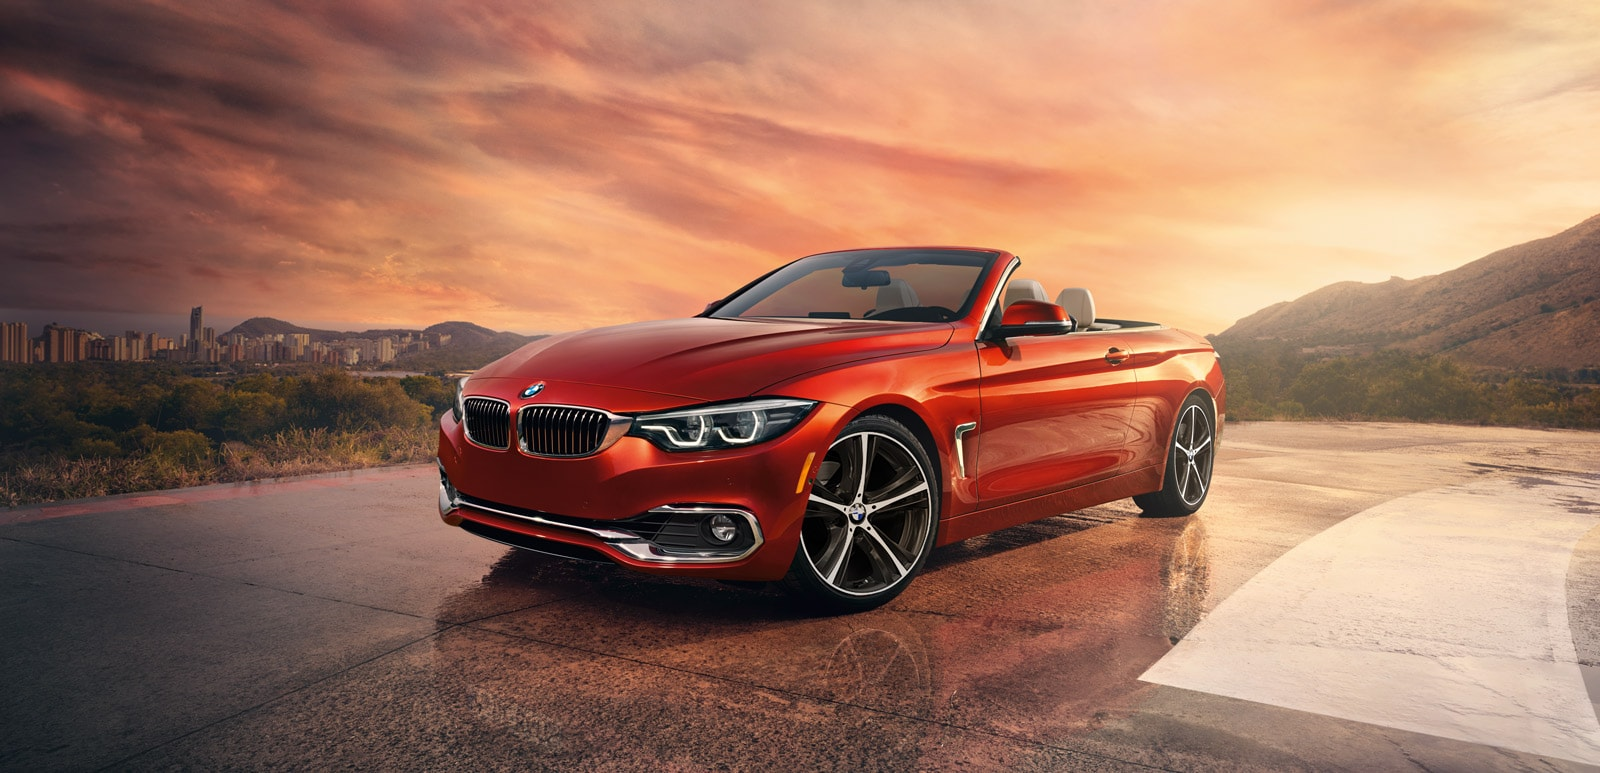 A 2019 BMW 4 Series Convertible with the top down parked overlooking a cityscape